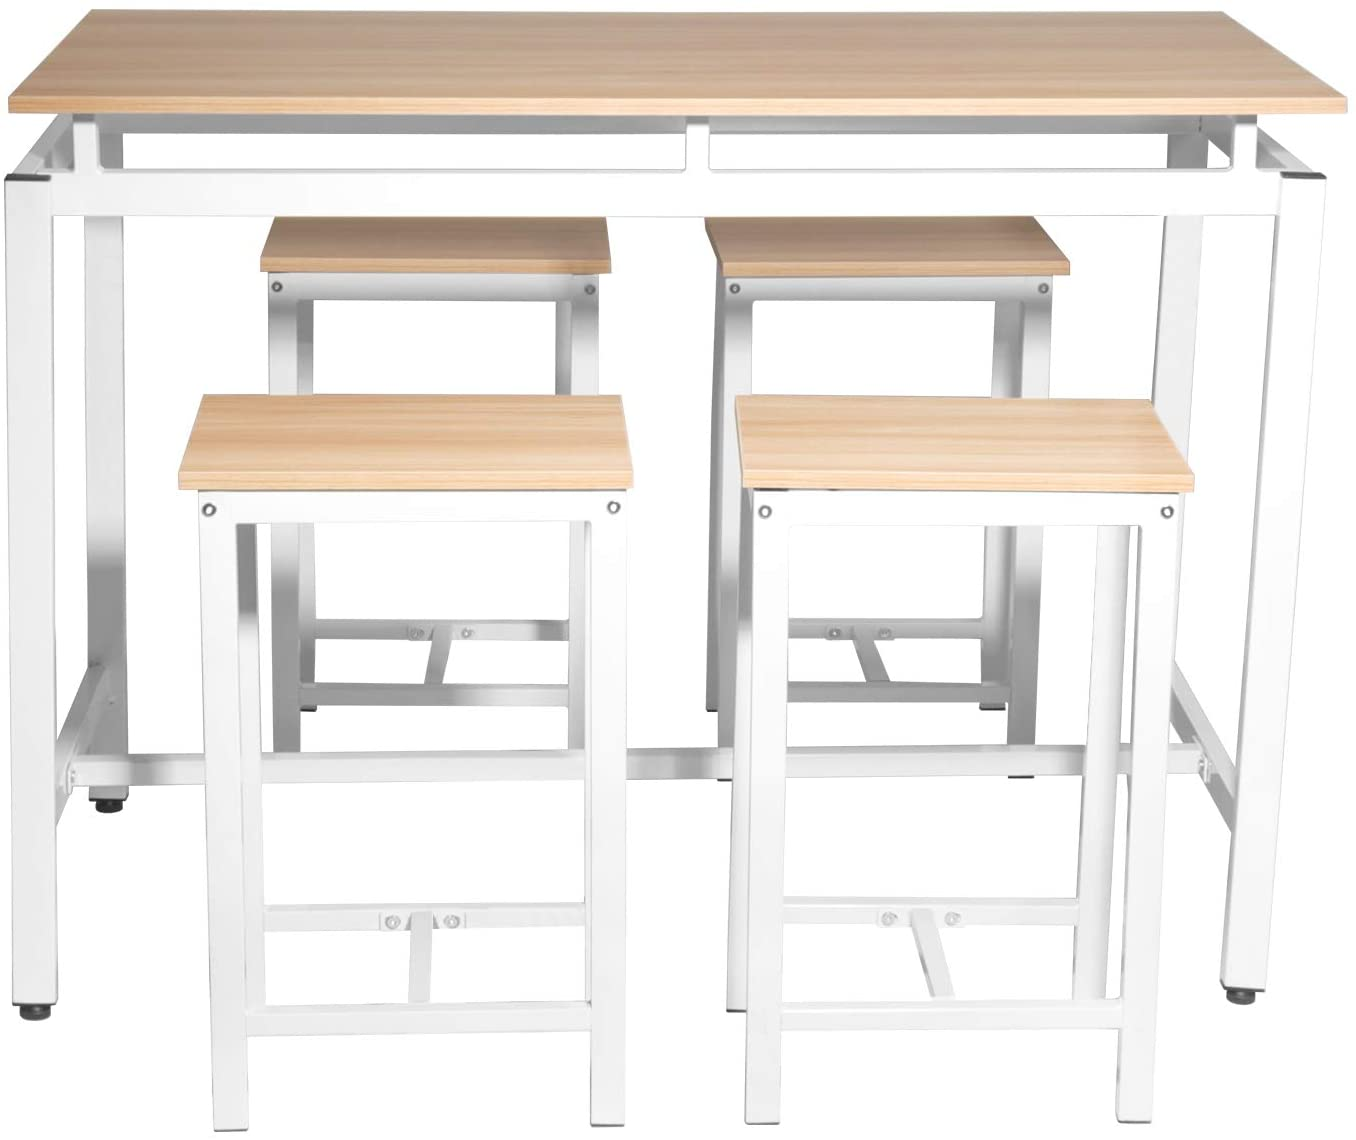 Knocbel Industrial Dining Table Set for 4, Counter Height Kitchen Dining Room Set with Metal Frame (Beige and White)